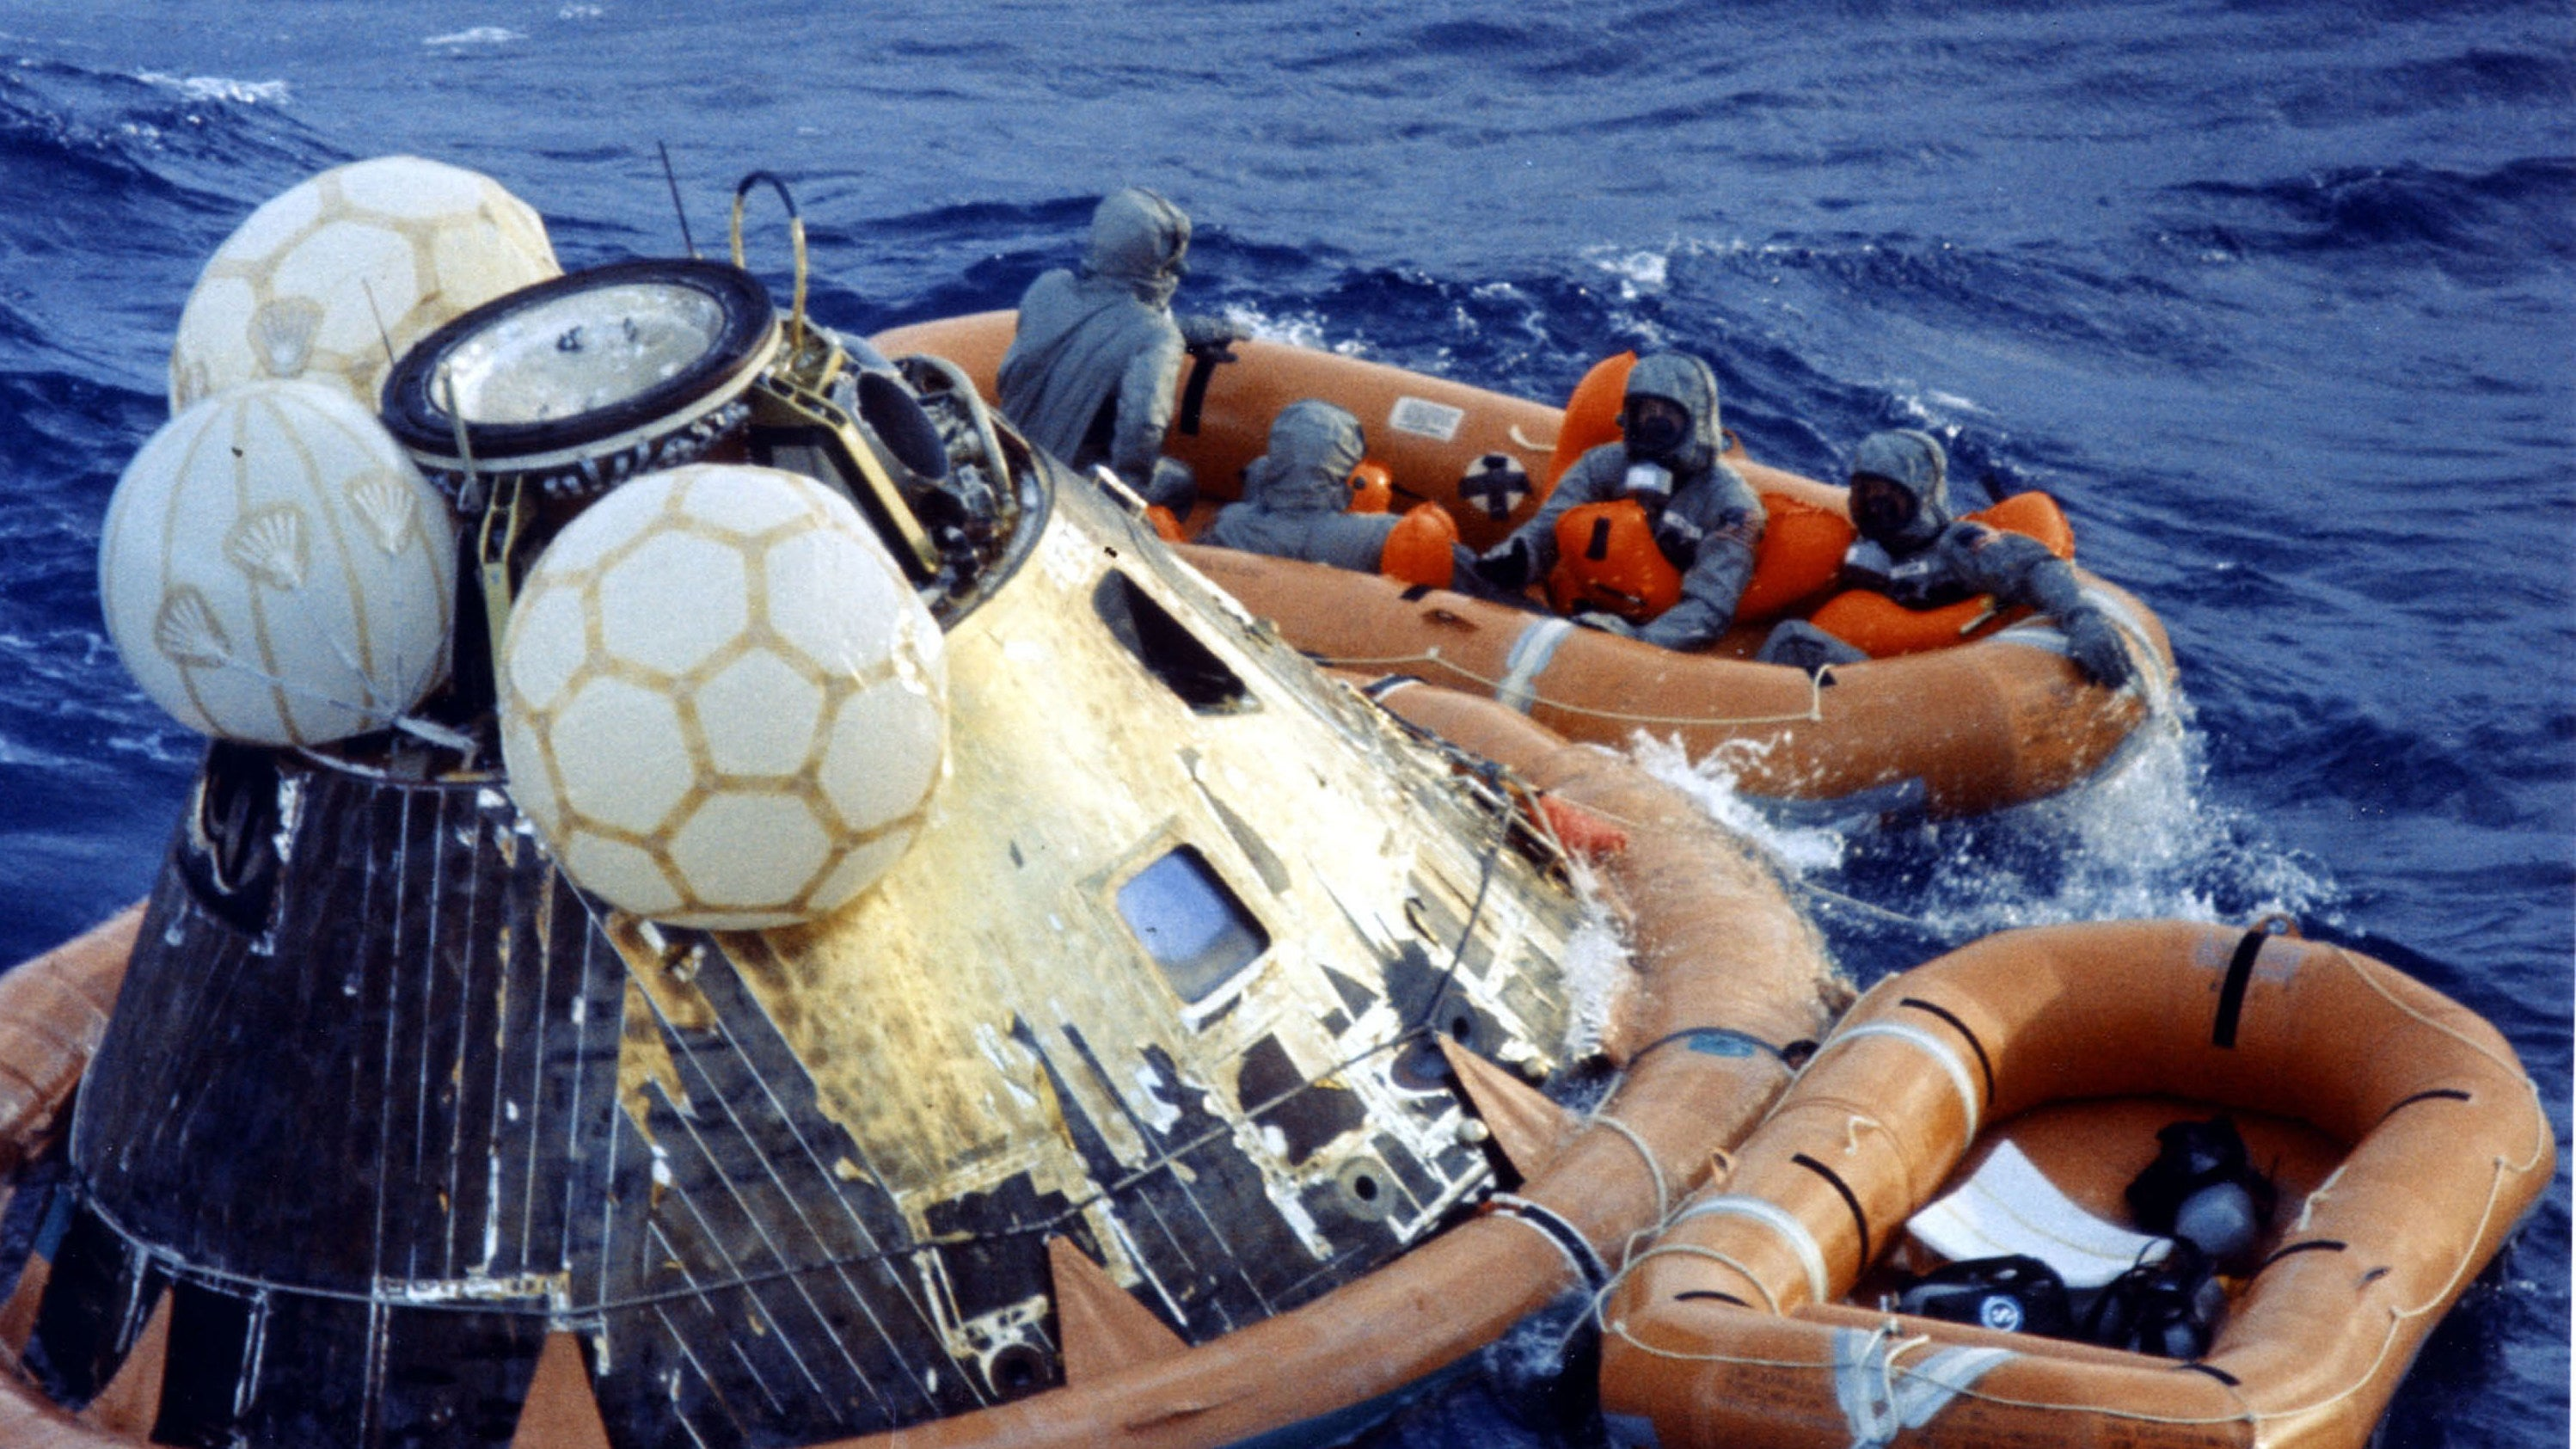 Here Are The Bad Things NASA Thought Might Happen To The First Astronauts On The Moon